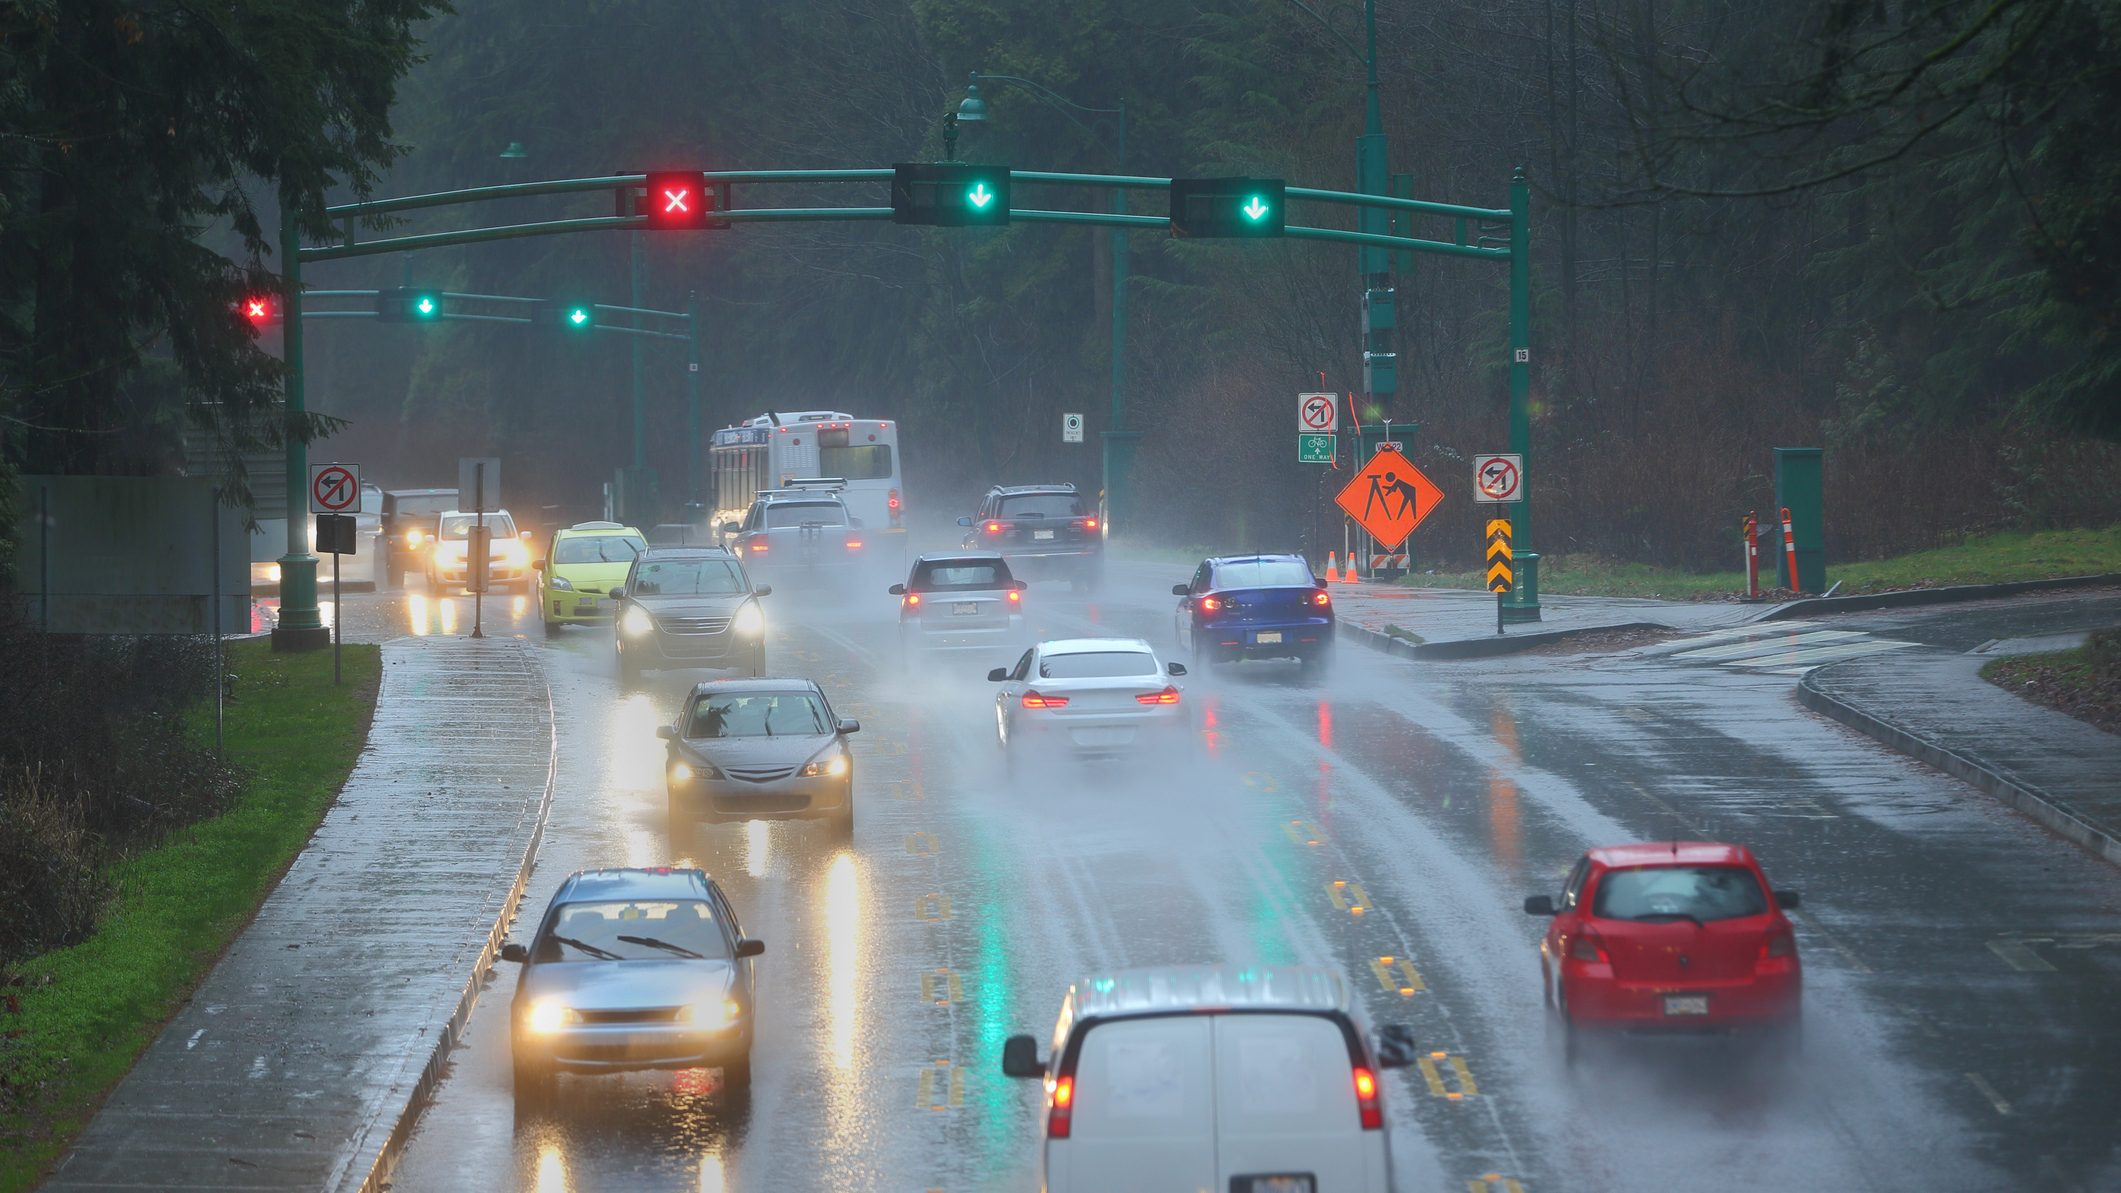 Wind and rain warning issued for parts of Vancouver Island